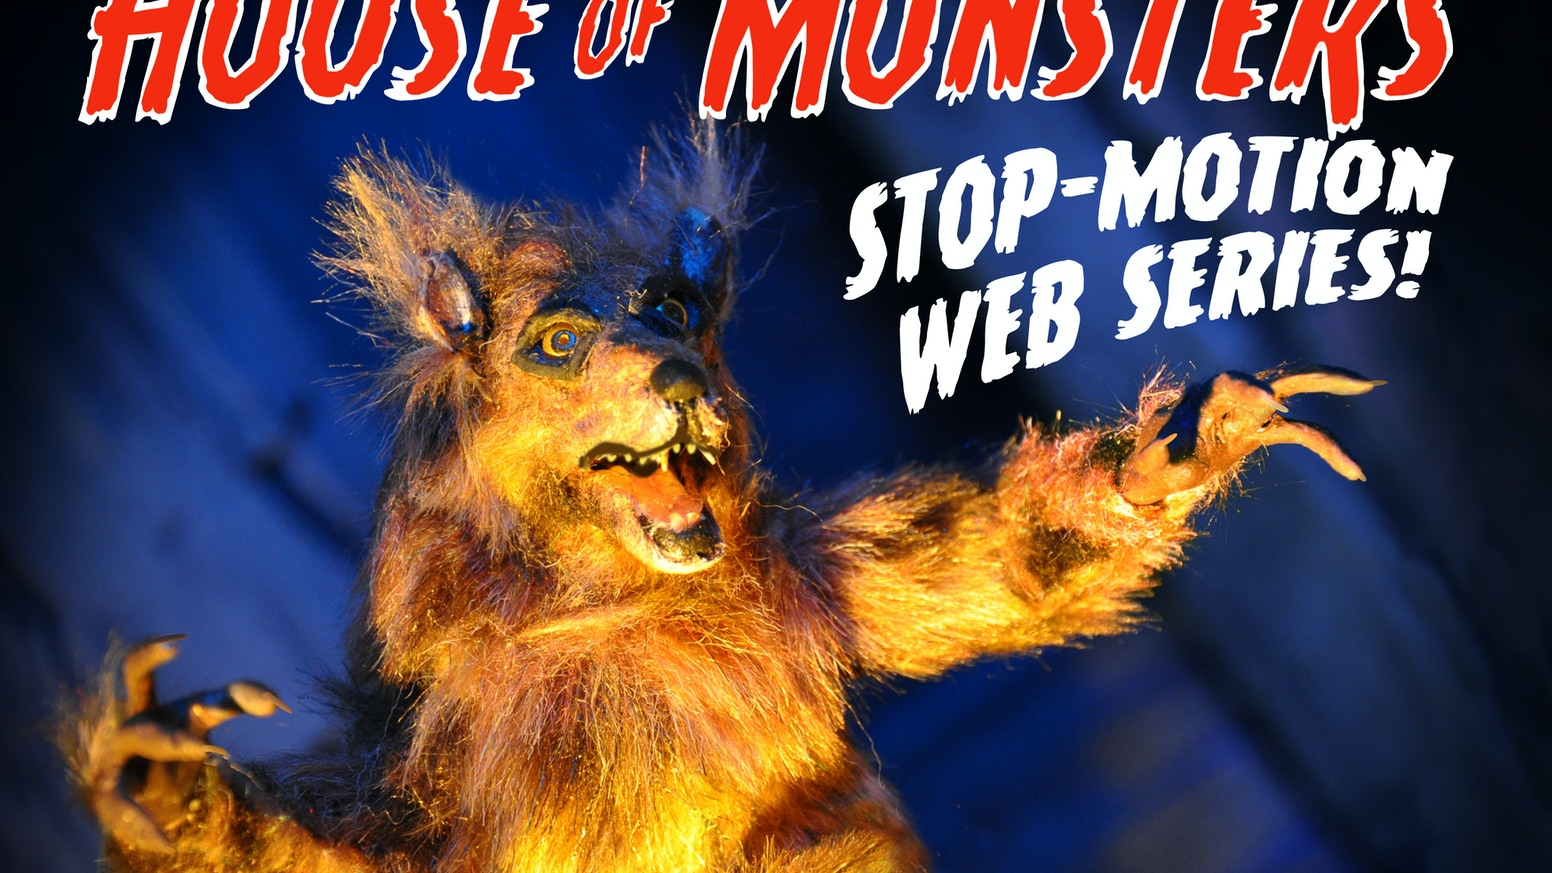 Mummies, Werewolves, Vampires, and all your favorite creatures of the night gather together for a stop-motion monster party!